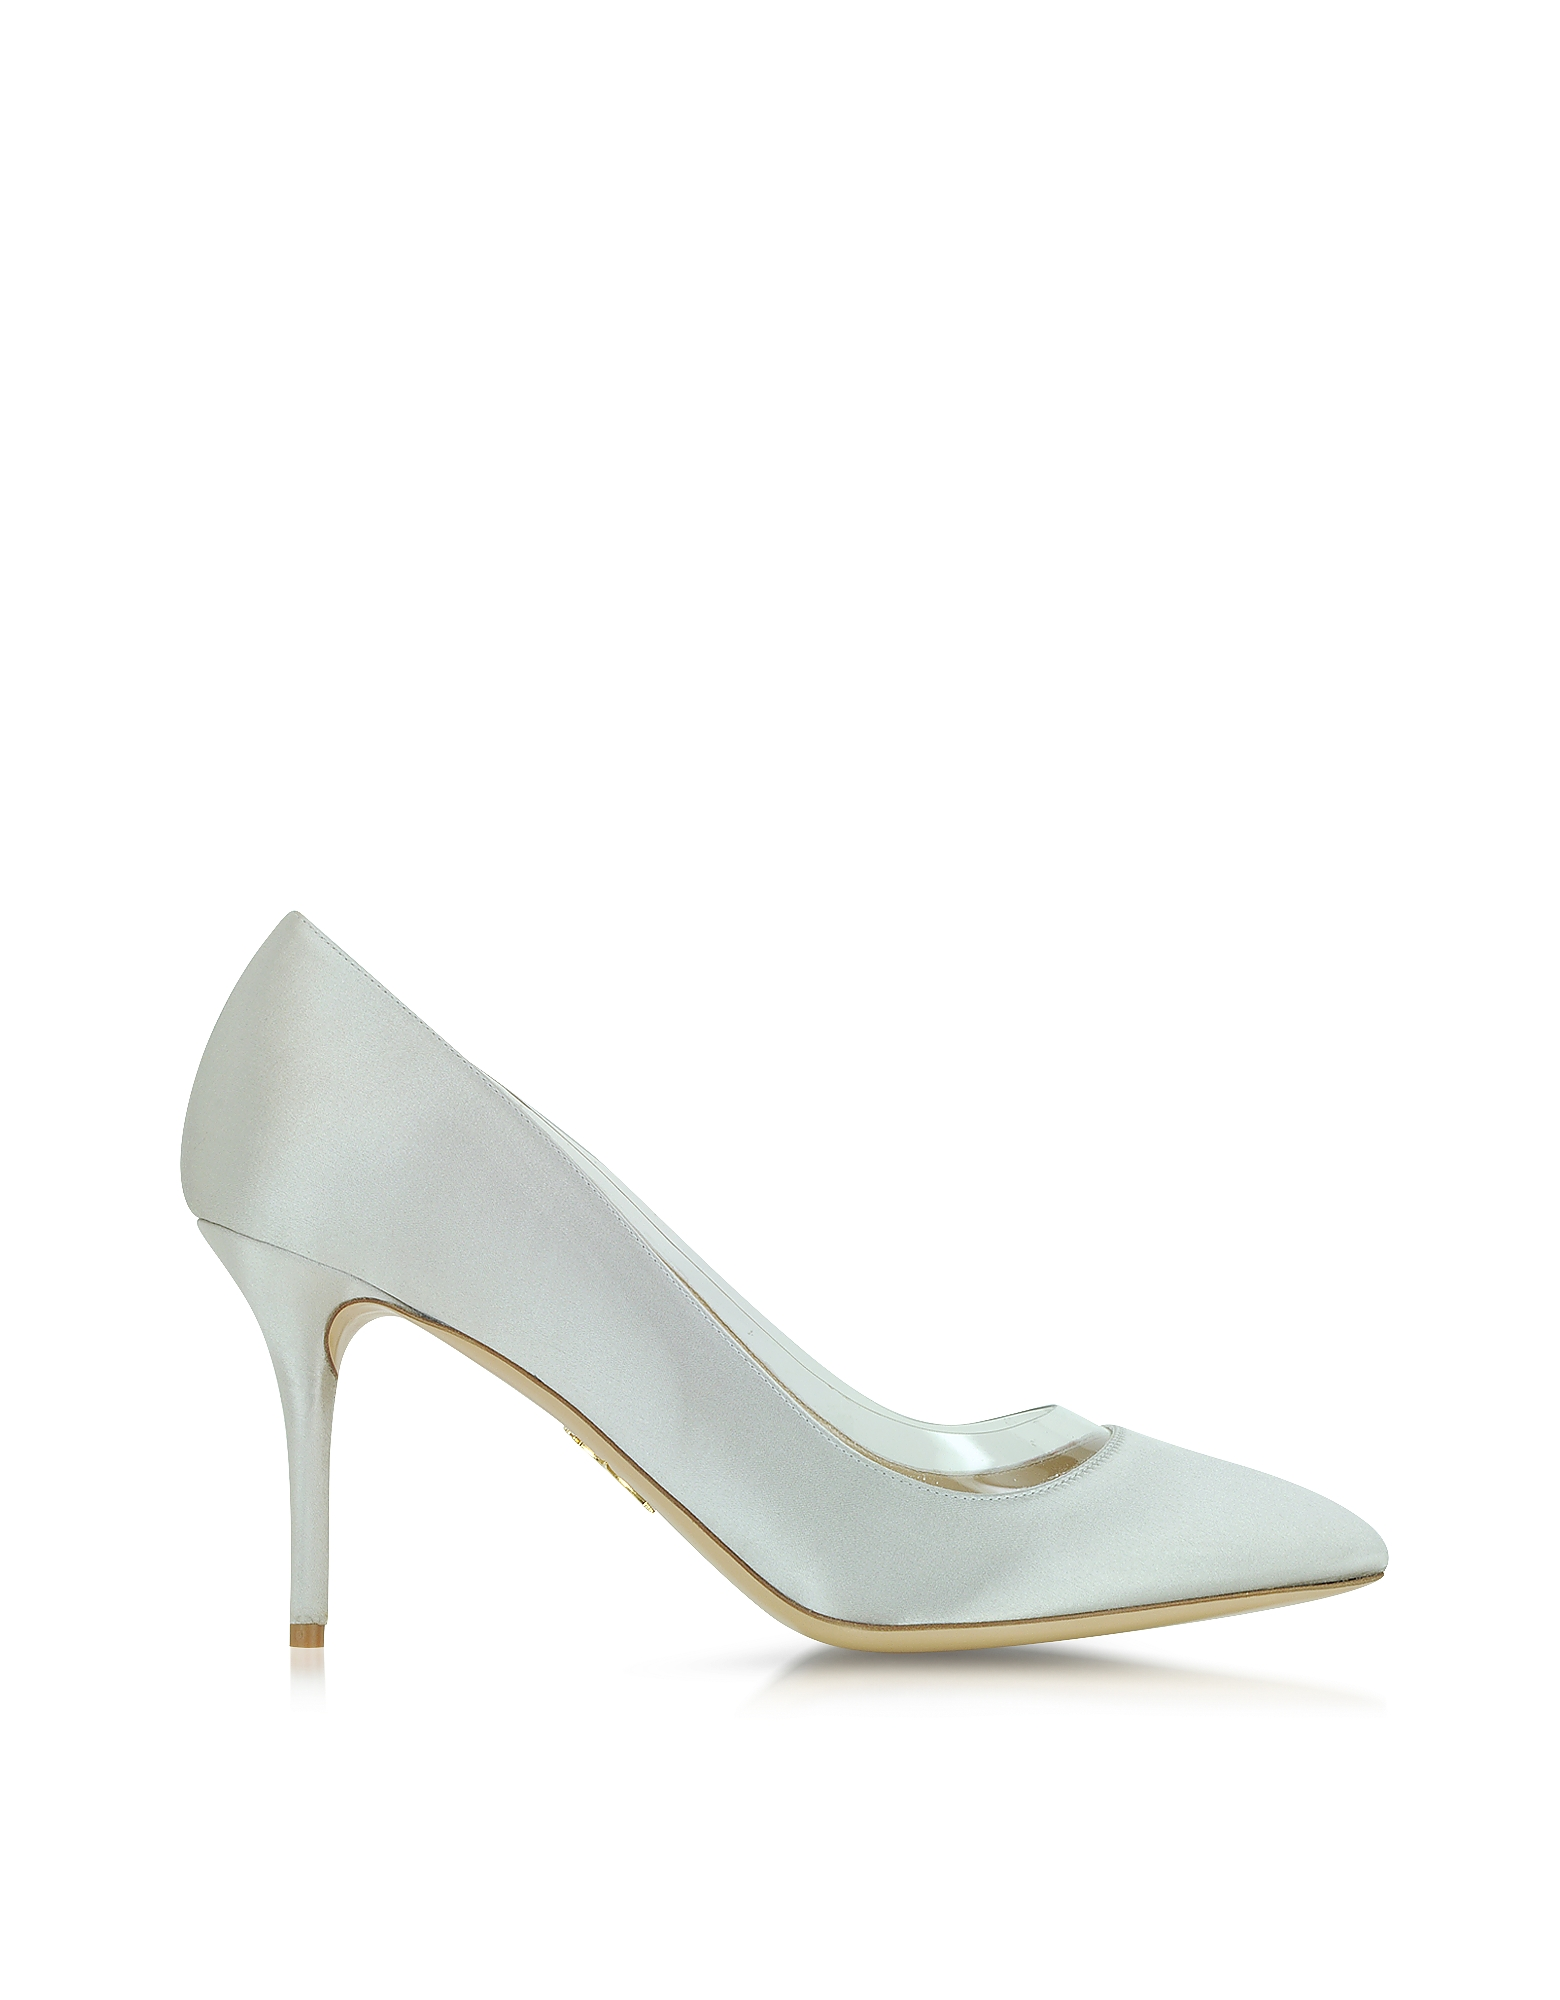 Charlotte Olympia Shoes, Party Shoes 85 Silver Satin Silk & PVC Pump